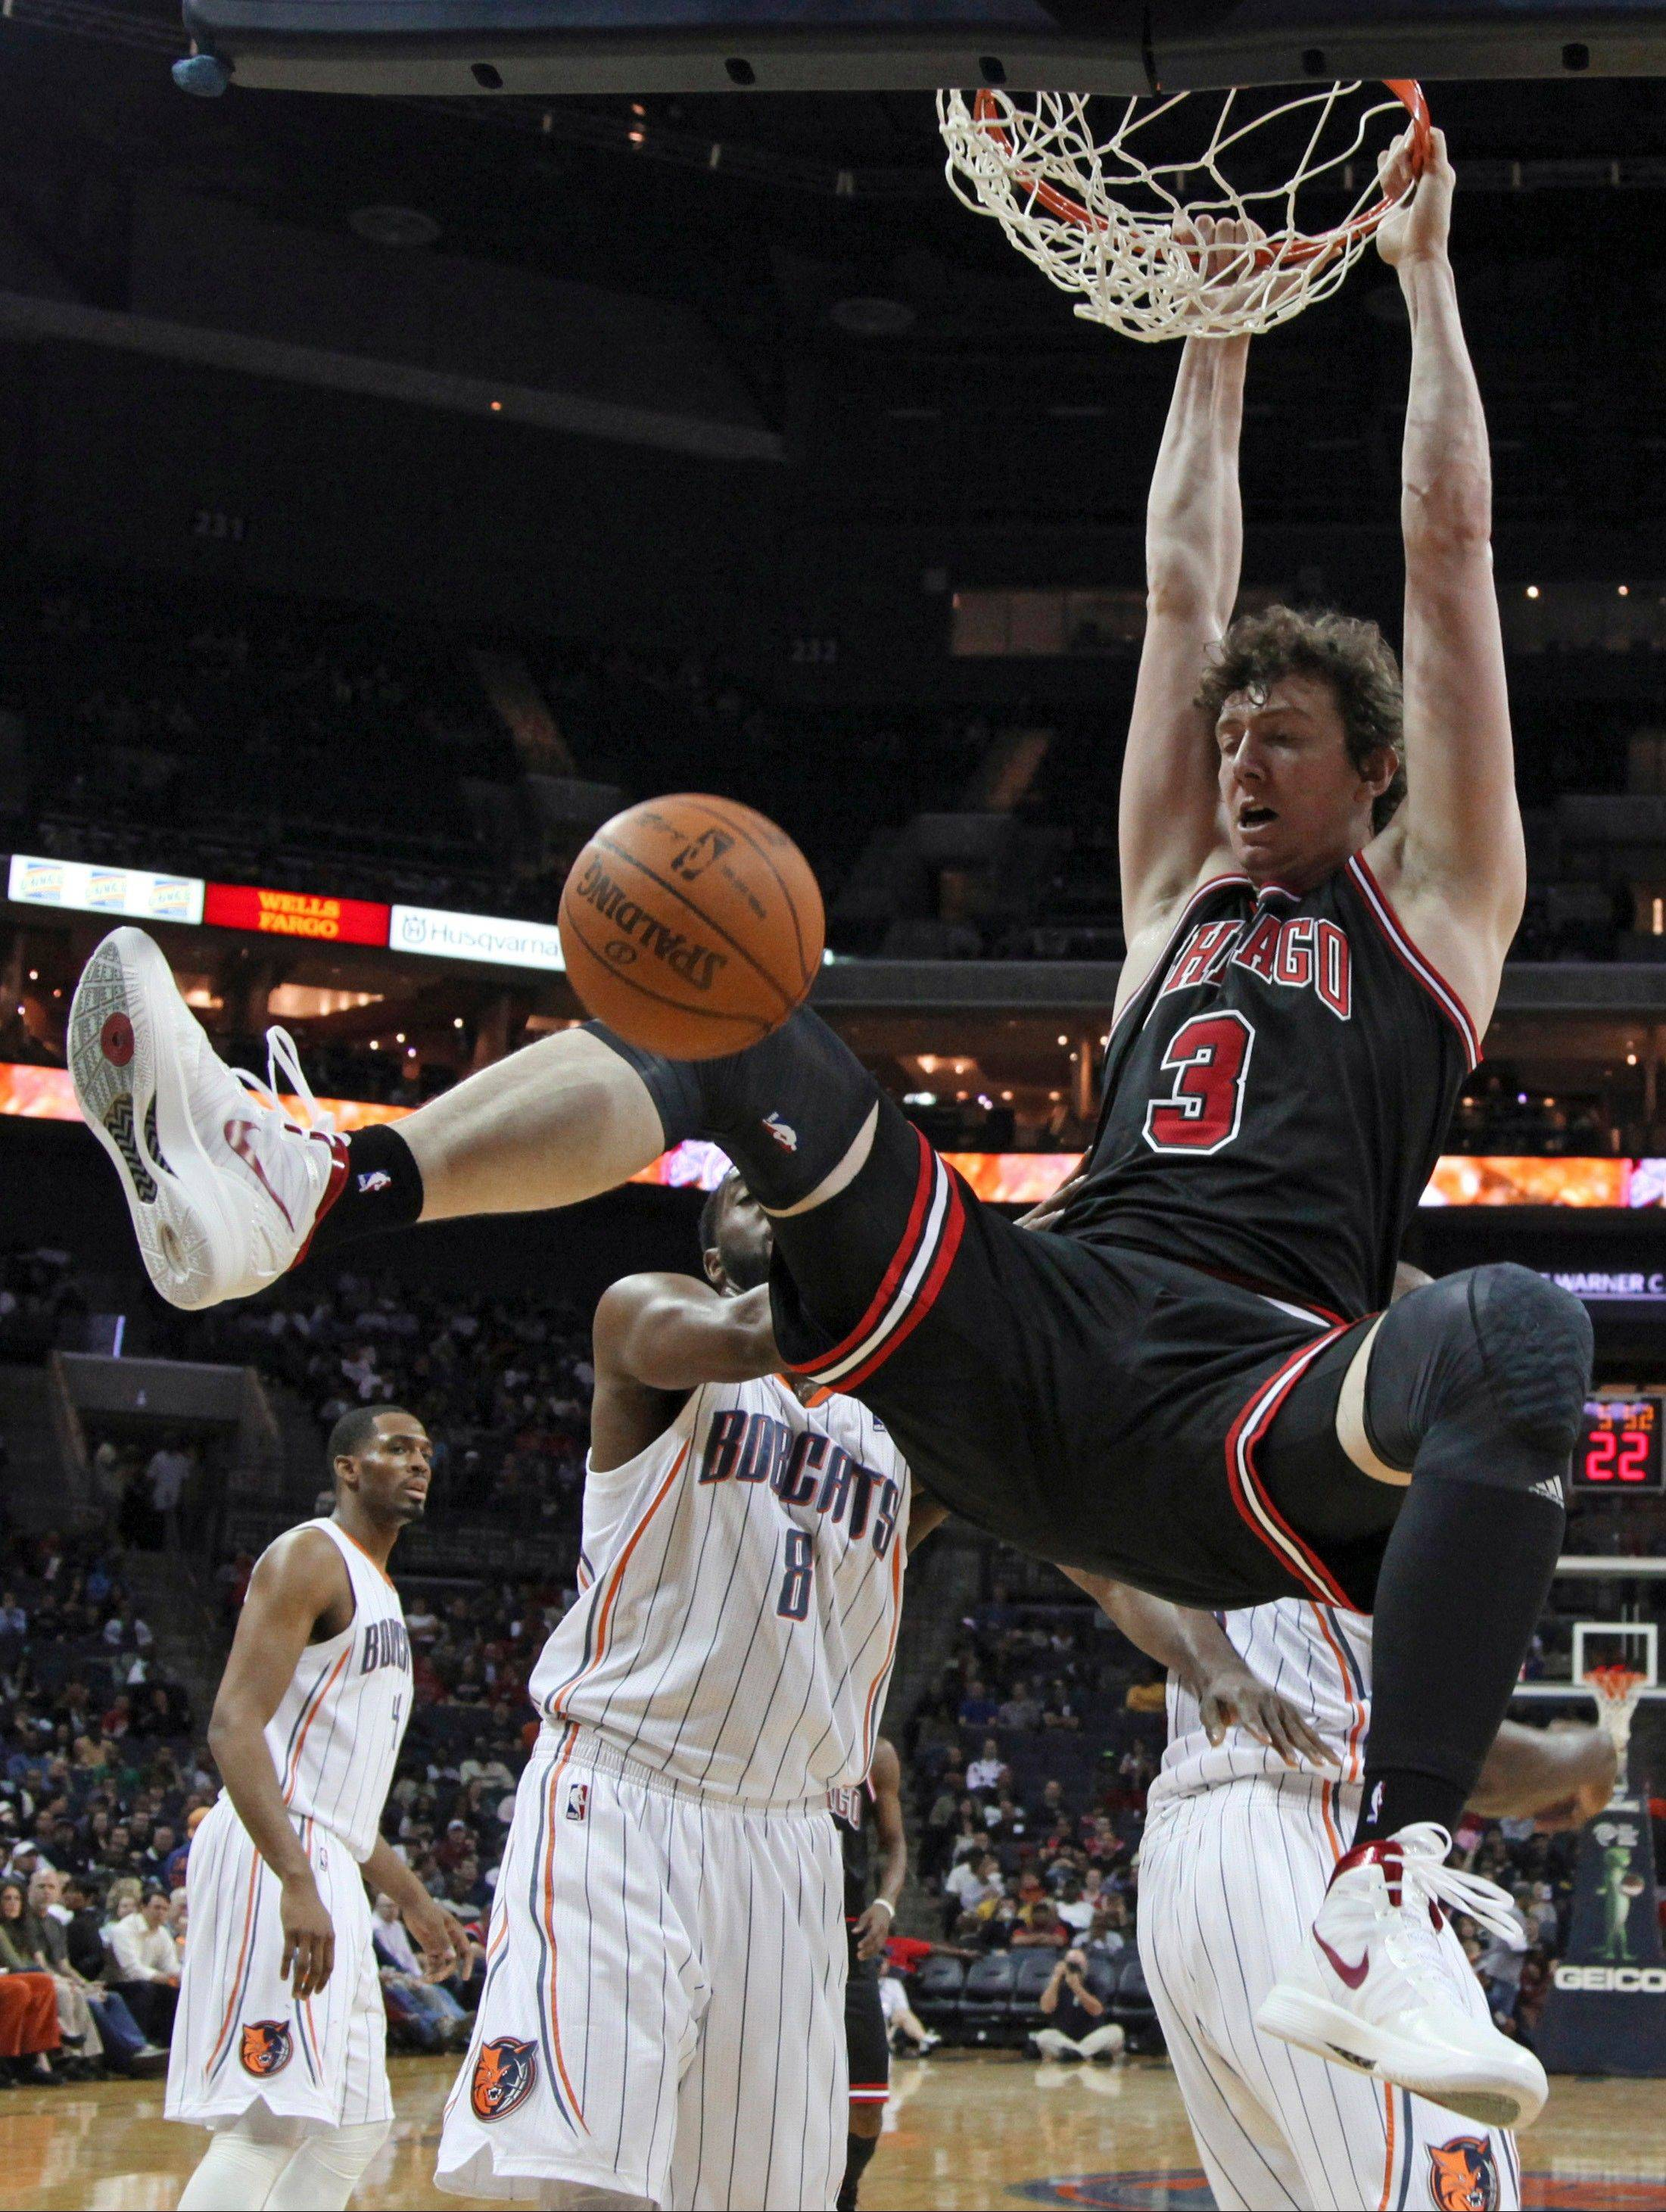 Omer Asik (3) dunks in front of Charlotte Bobcats' D.J. White (8) during the first half of an NBA basketball game in Charlotte, N.C., Wednesday, April 18, 2012.